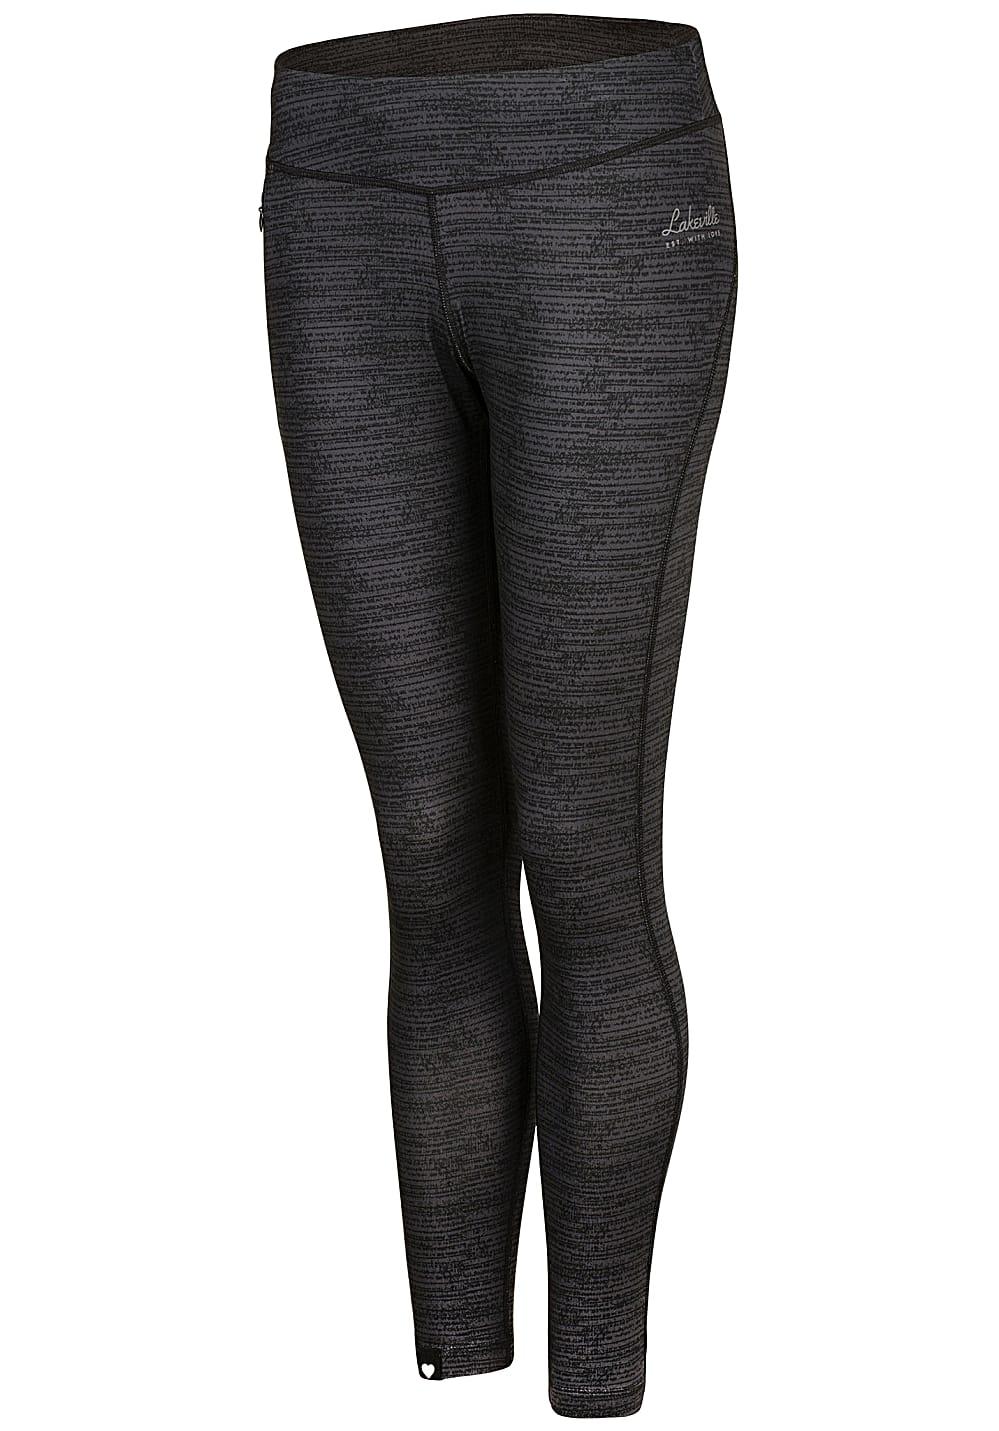 Neupetershain Angebote Lakeville Mountain Athletic AOP - Leggings für Damen Schwarz